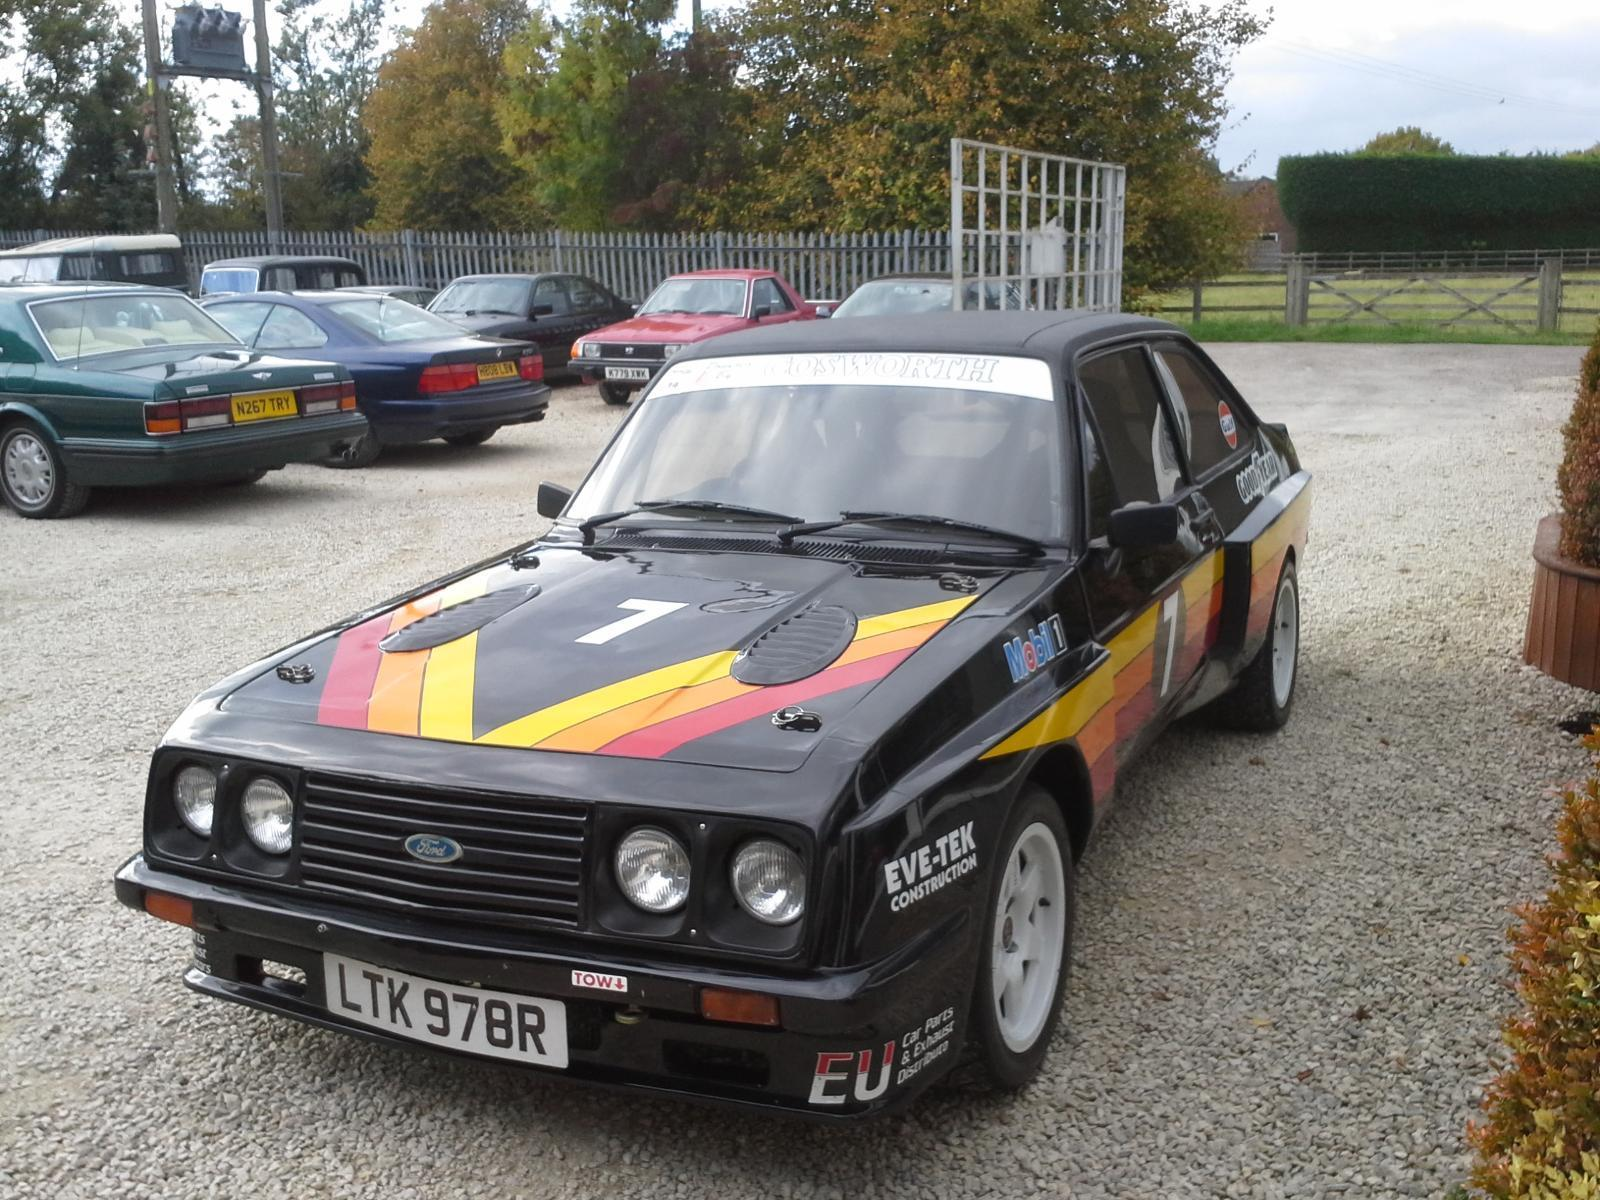 Ford Escort Mk2 XPACK BODY COSWORTH DURA TEC 2.3 RACE RALLY ROAD CAR